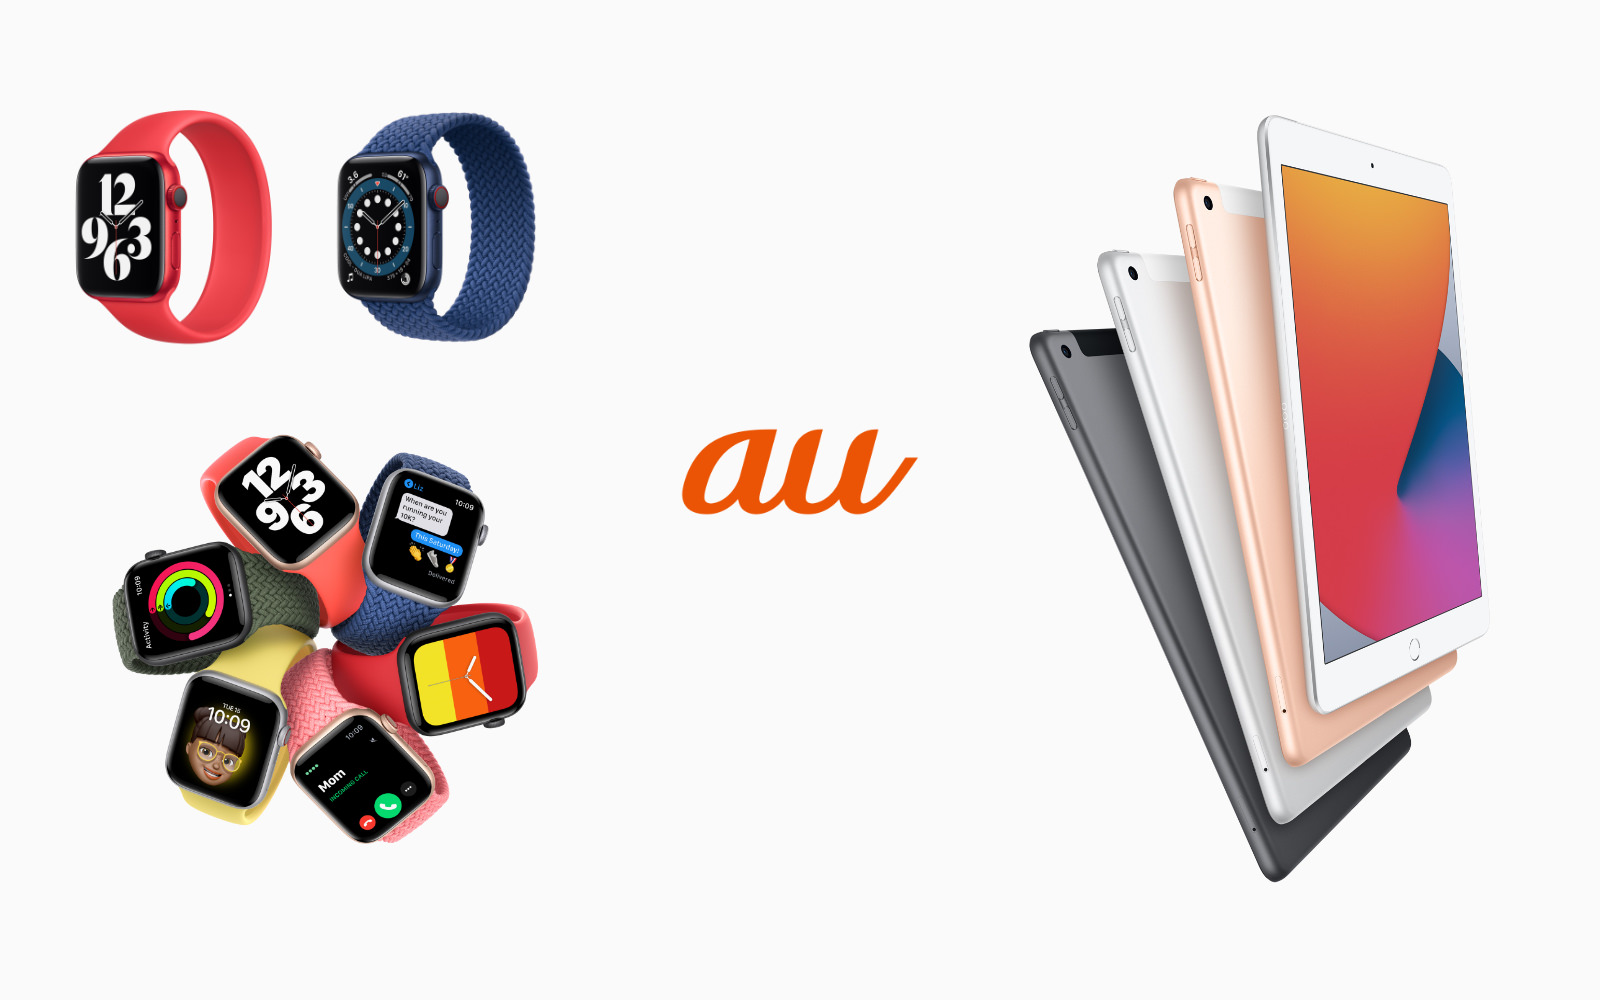 au-pricing-for-ipad8-applewatch6-and-se.jpg